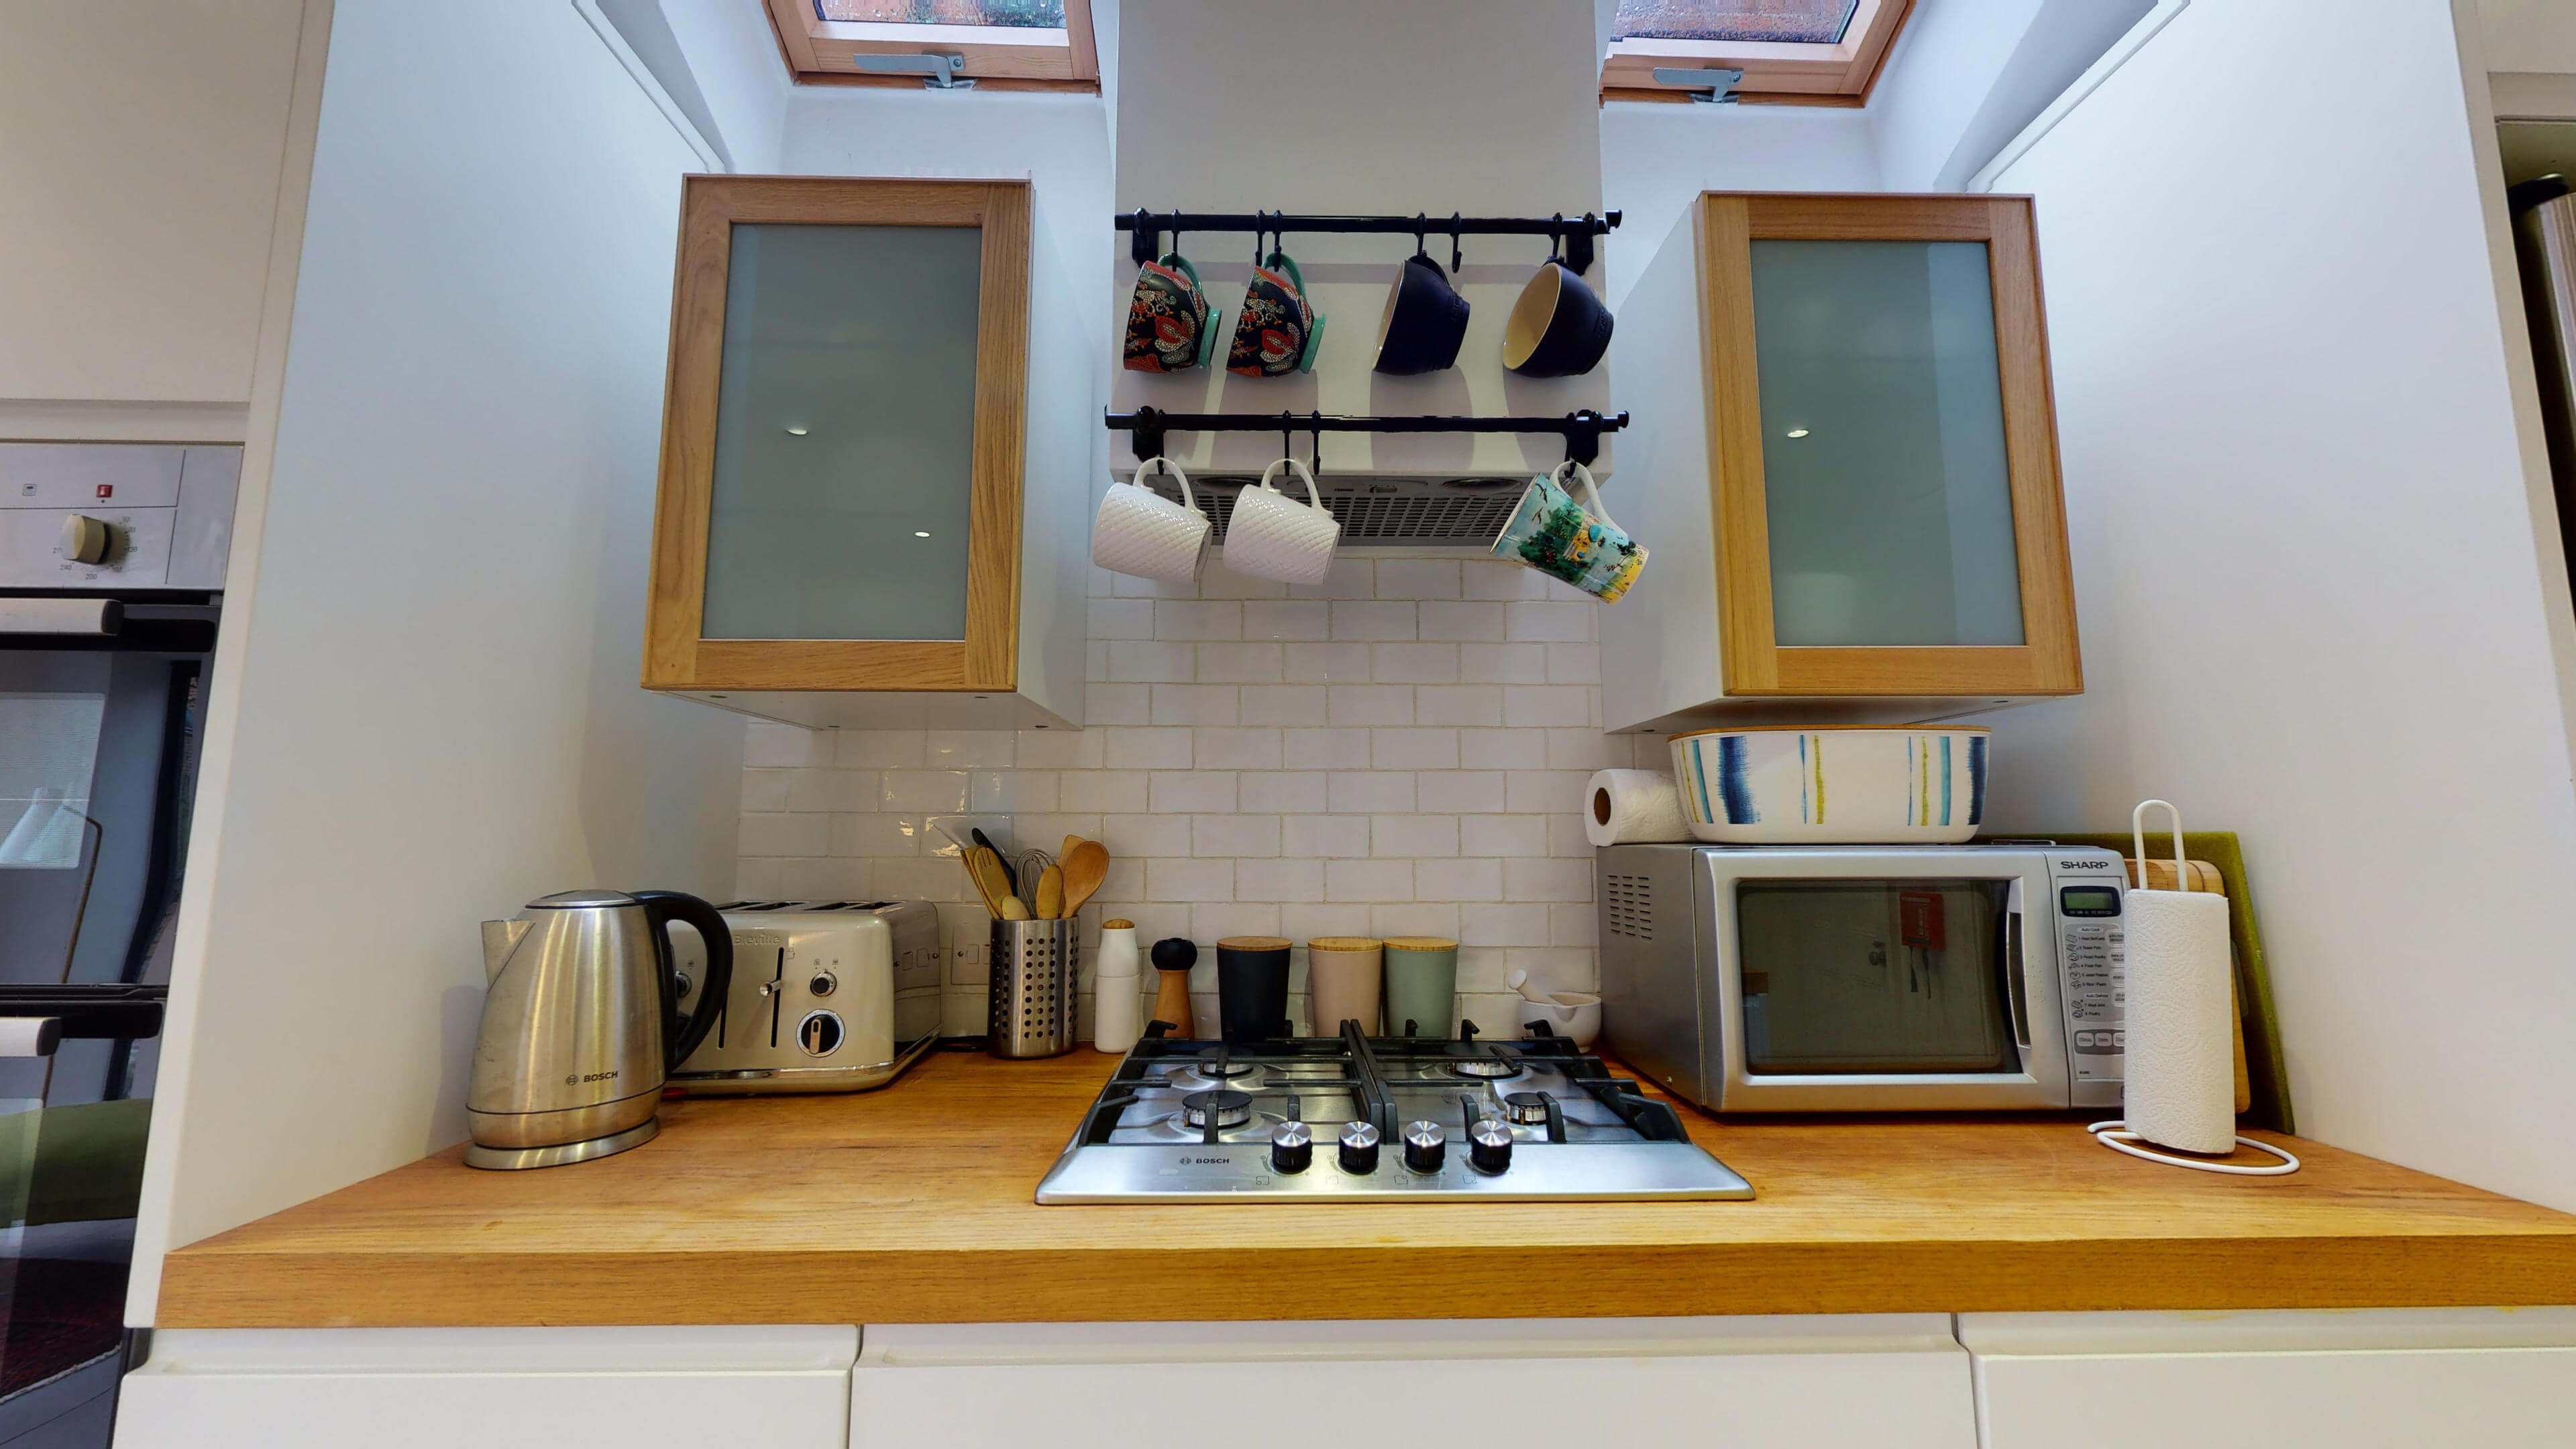 The Oxford Artists House Kitchen Units